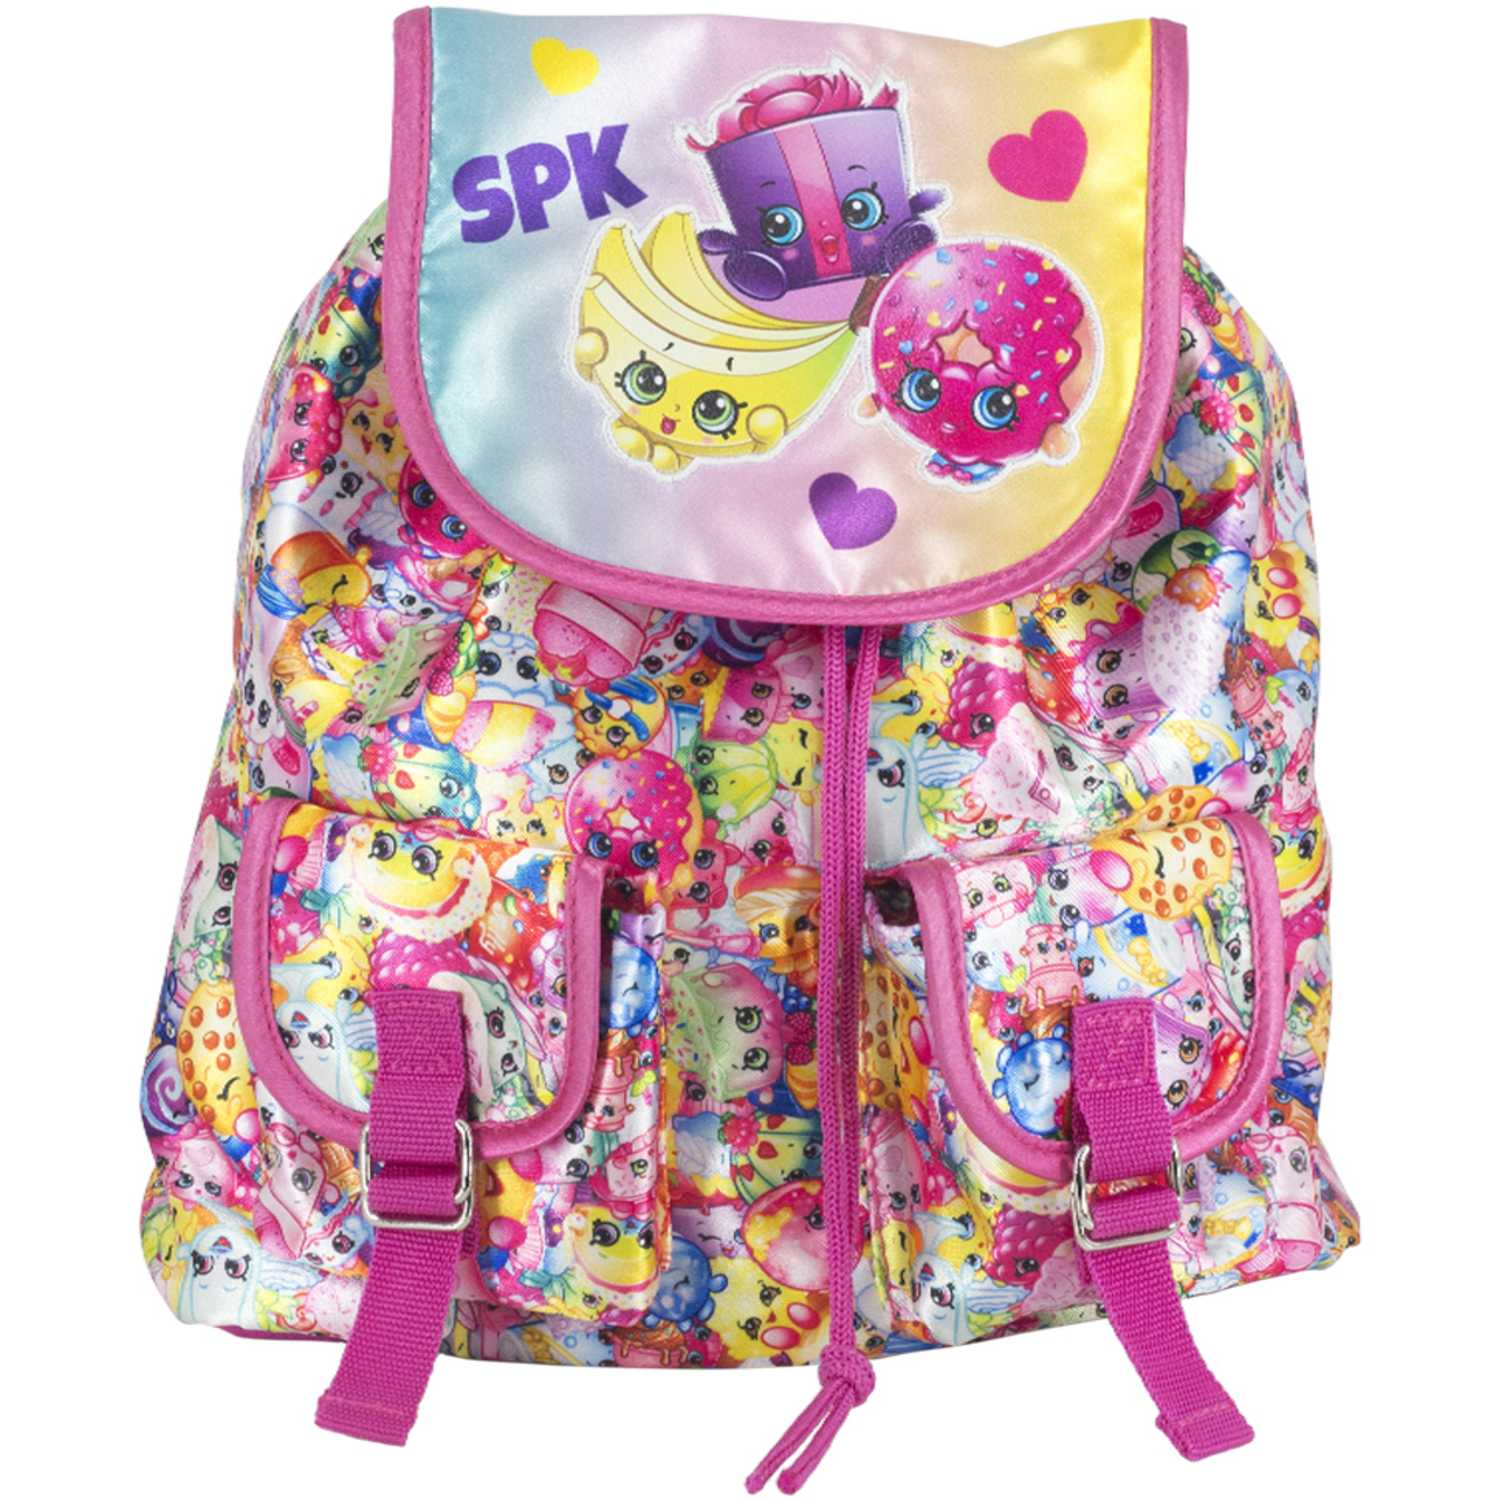 Shopkins Mini Mochila Shopkins Rosado Mochilas